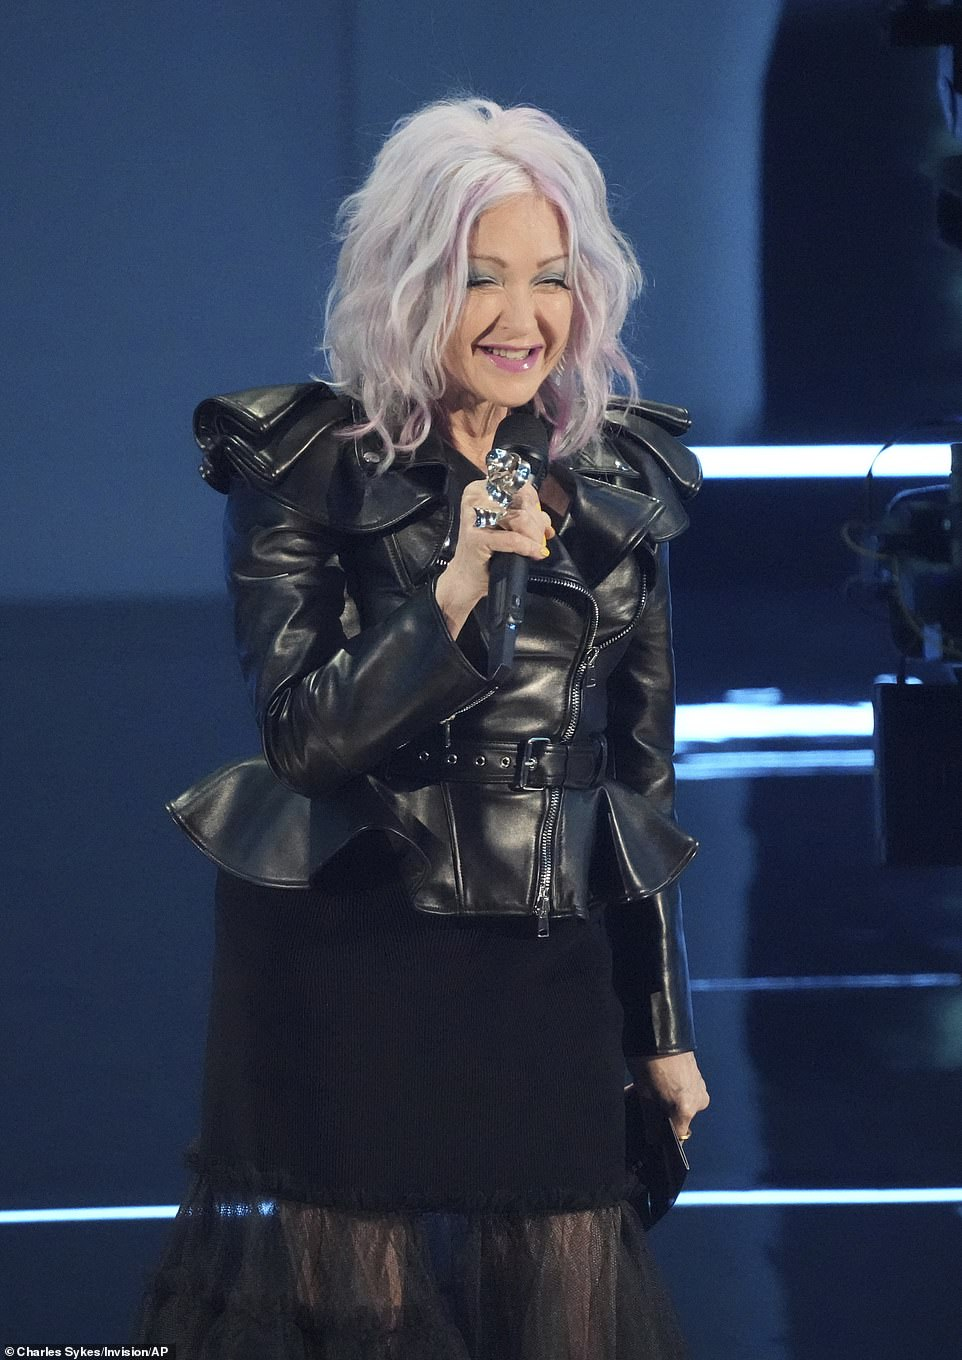 Moon person:Moon person: 'I won a moon person at the very first VMAs in 1984. Things are a little different now. Yeah, girls wanna have fun. But we also want to have funds. Equal pay. Control over our bodies! You know, fundamental rights,' Lauper said to huge applause